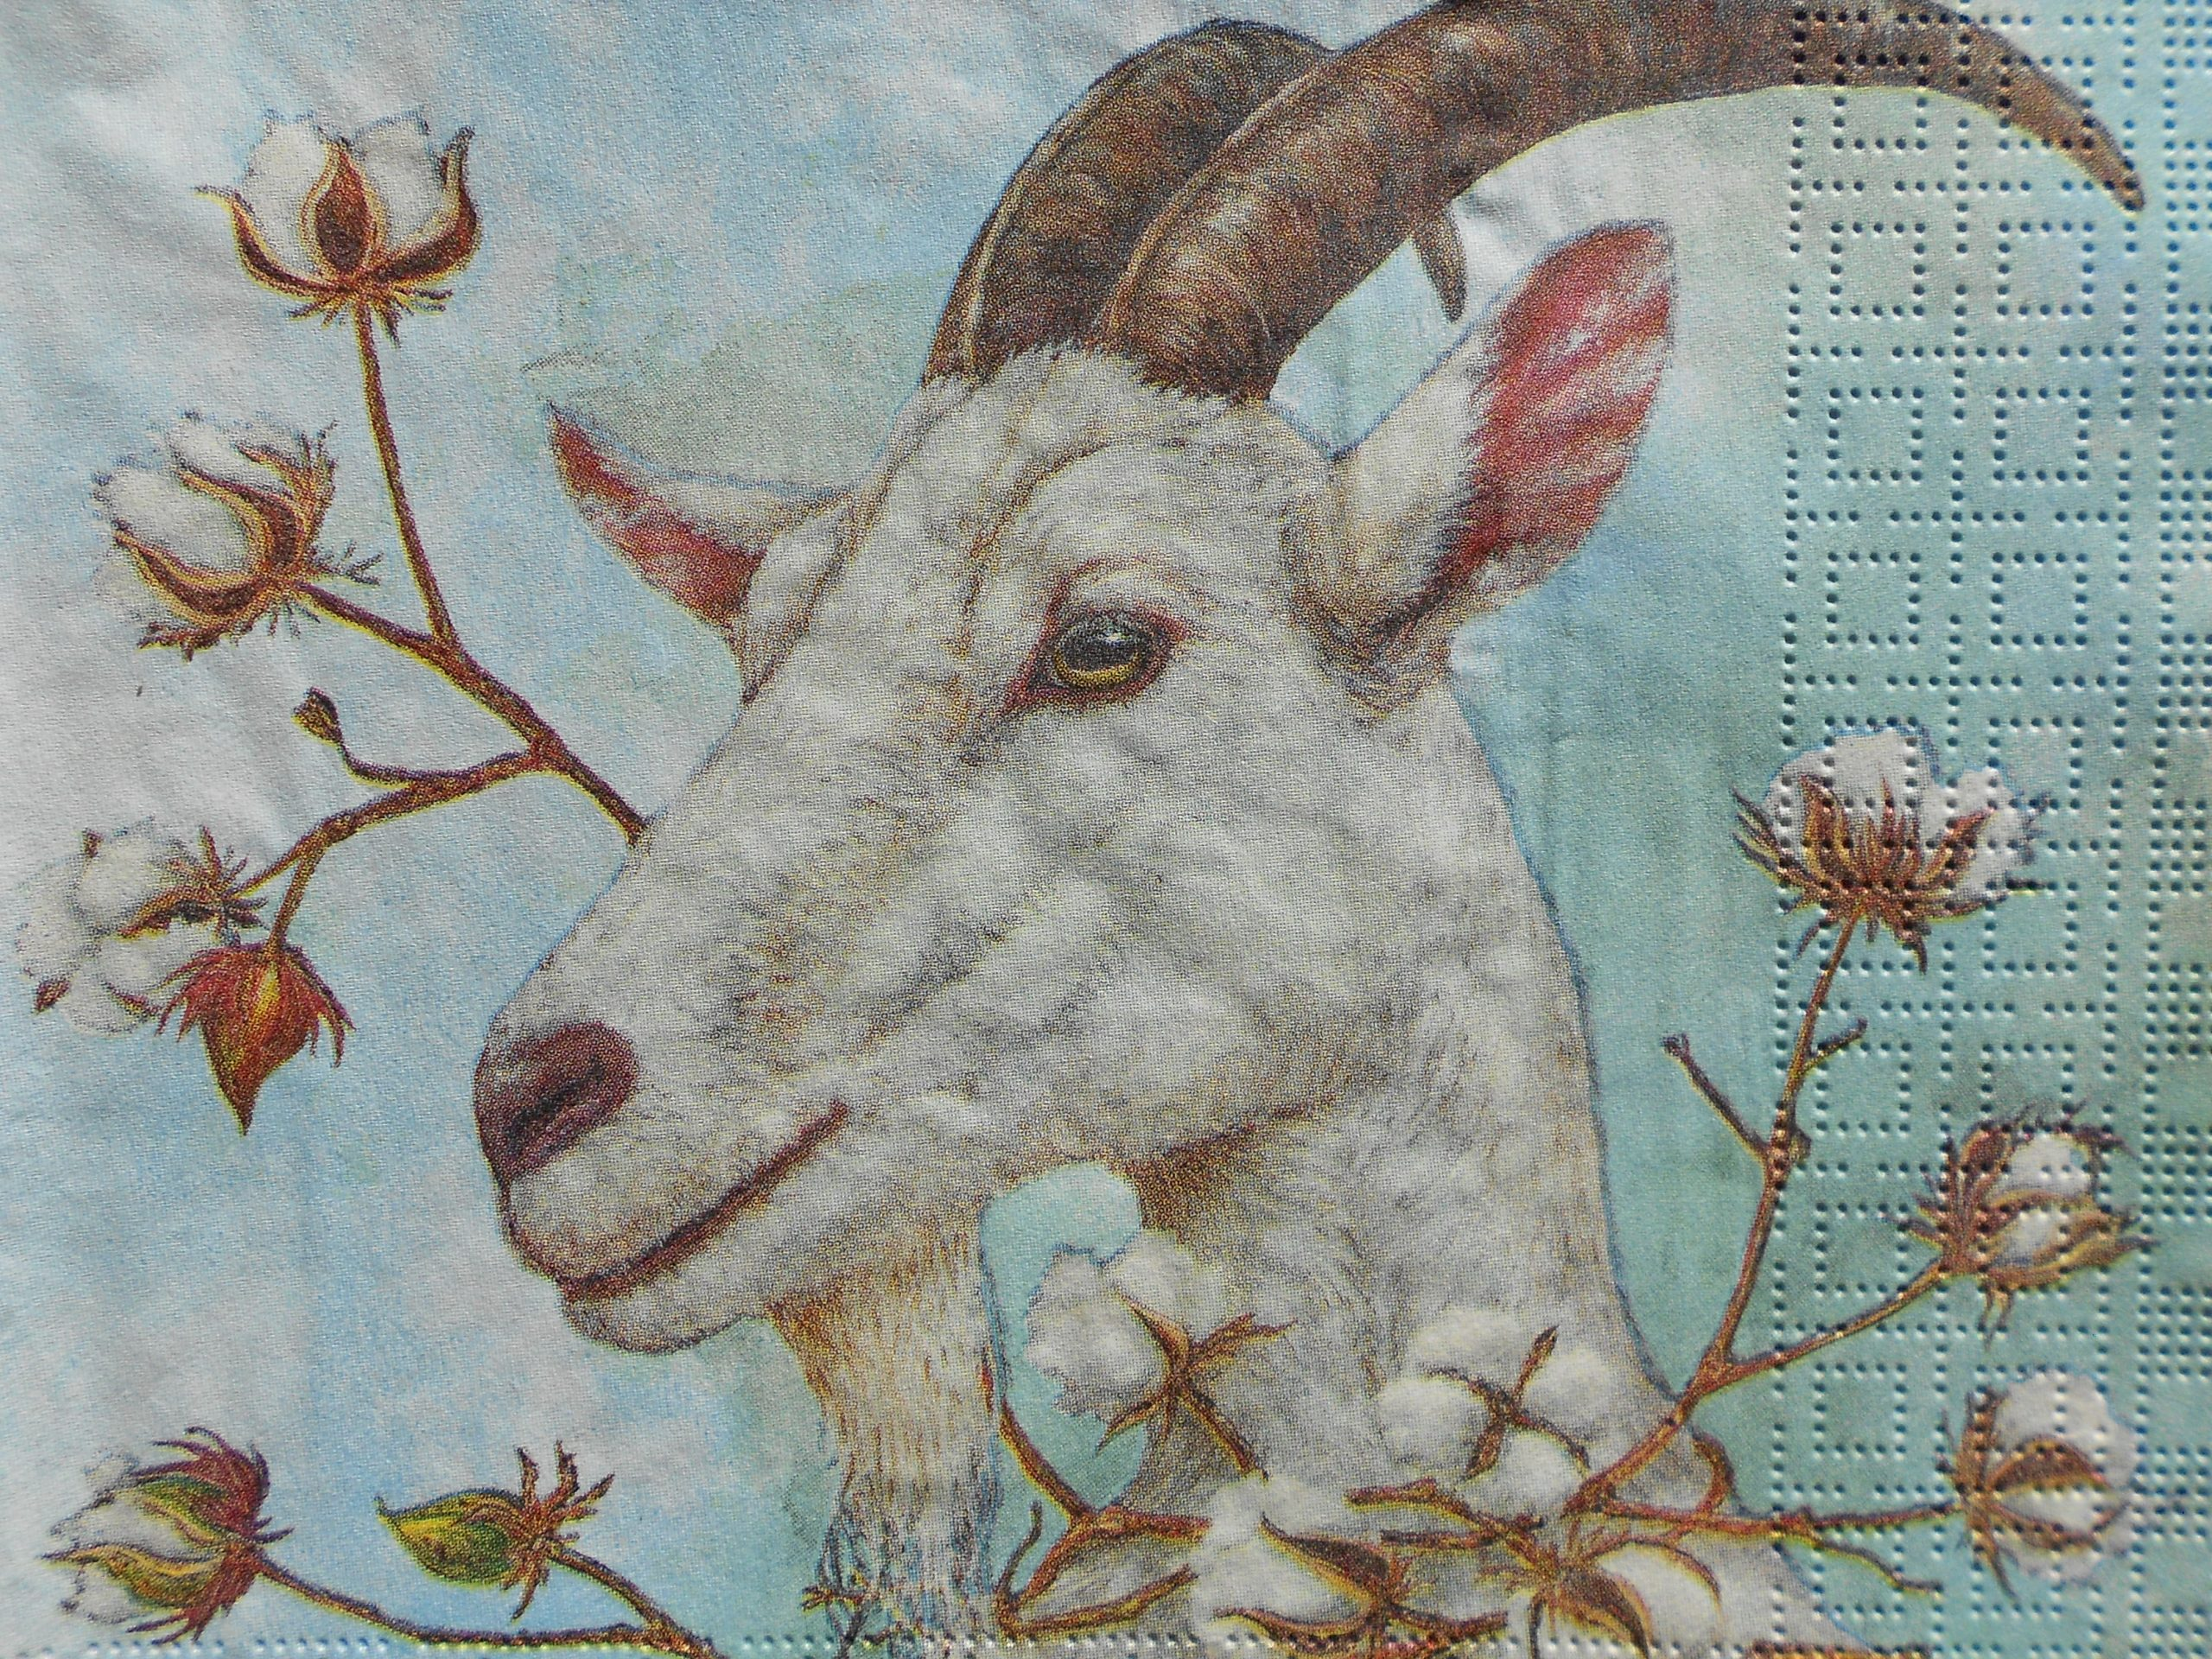 White Goat Cotton Buds Decoupage Paper Napkins Decoupage Paper